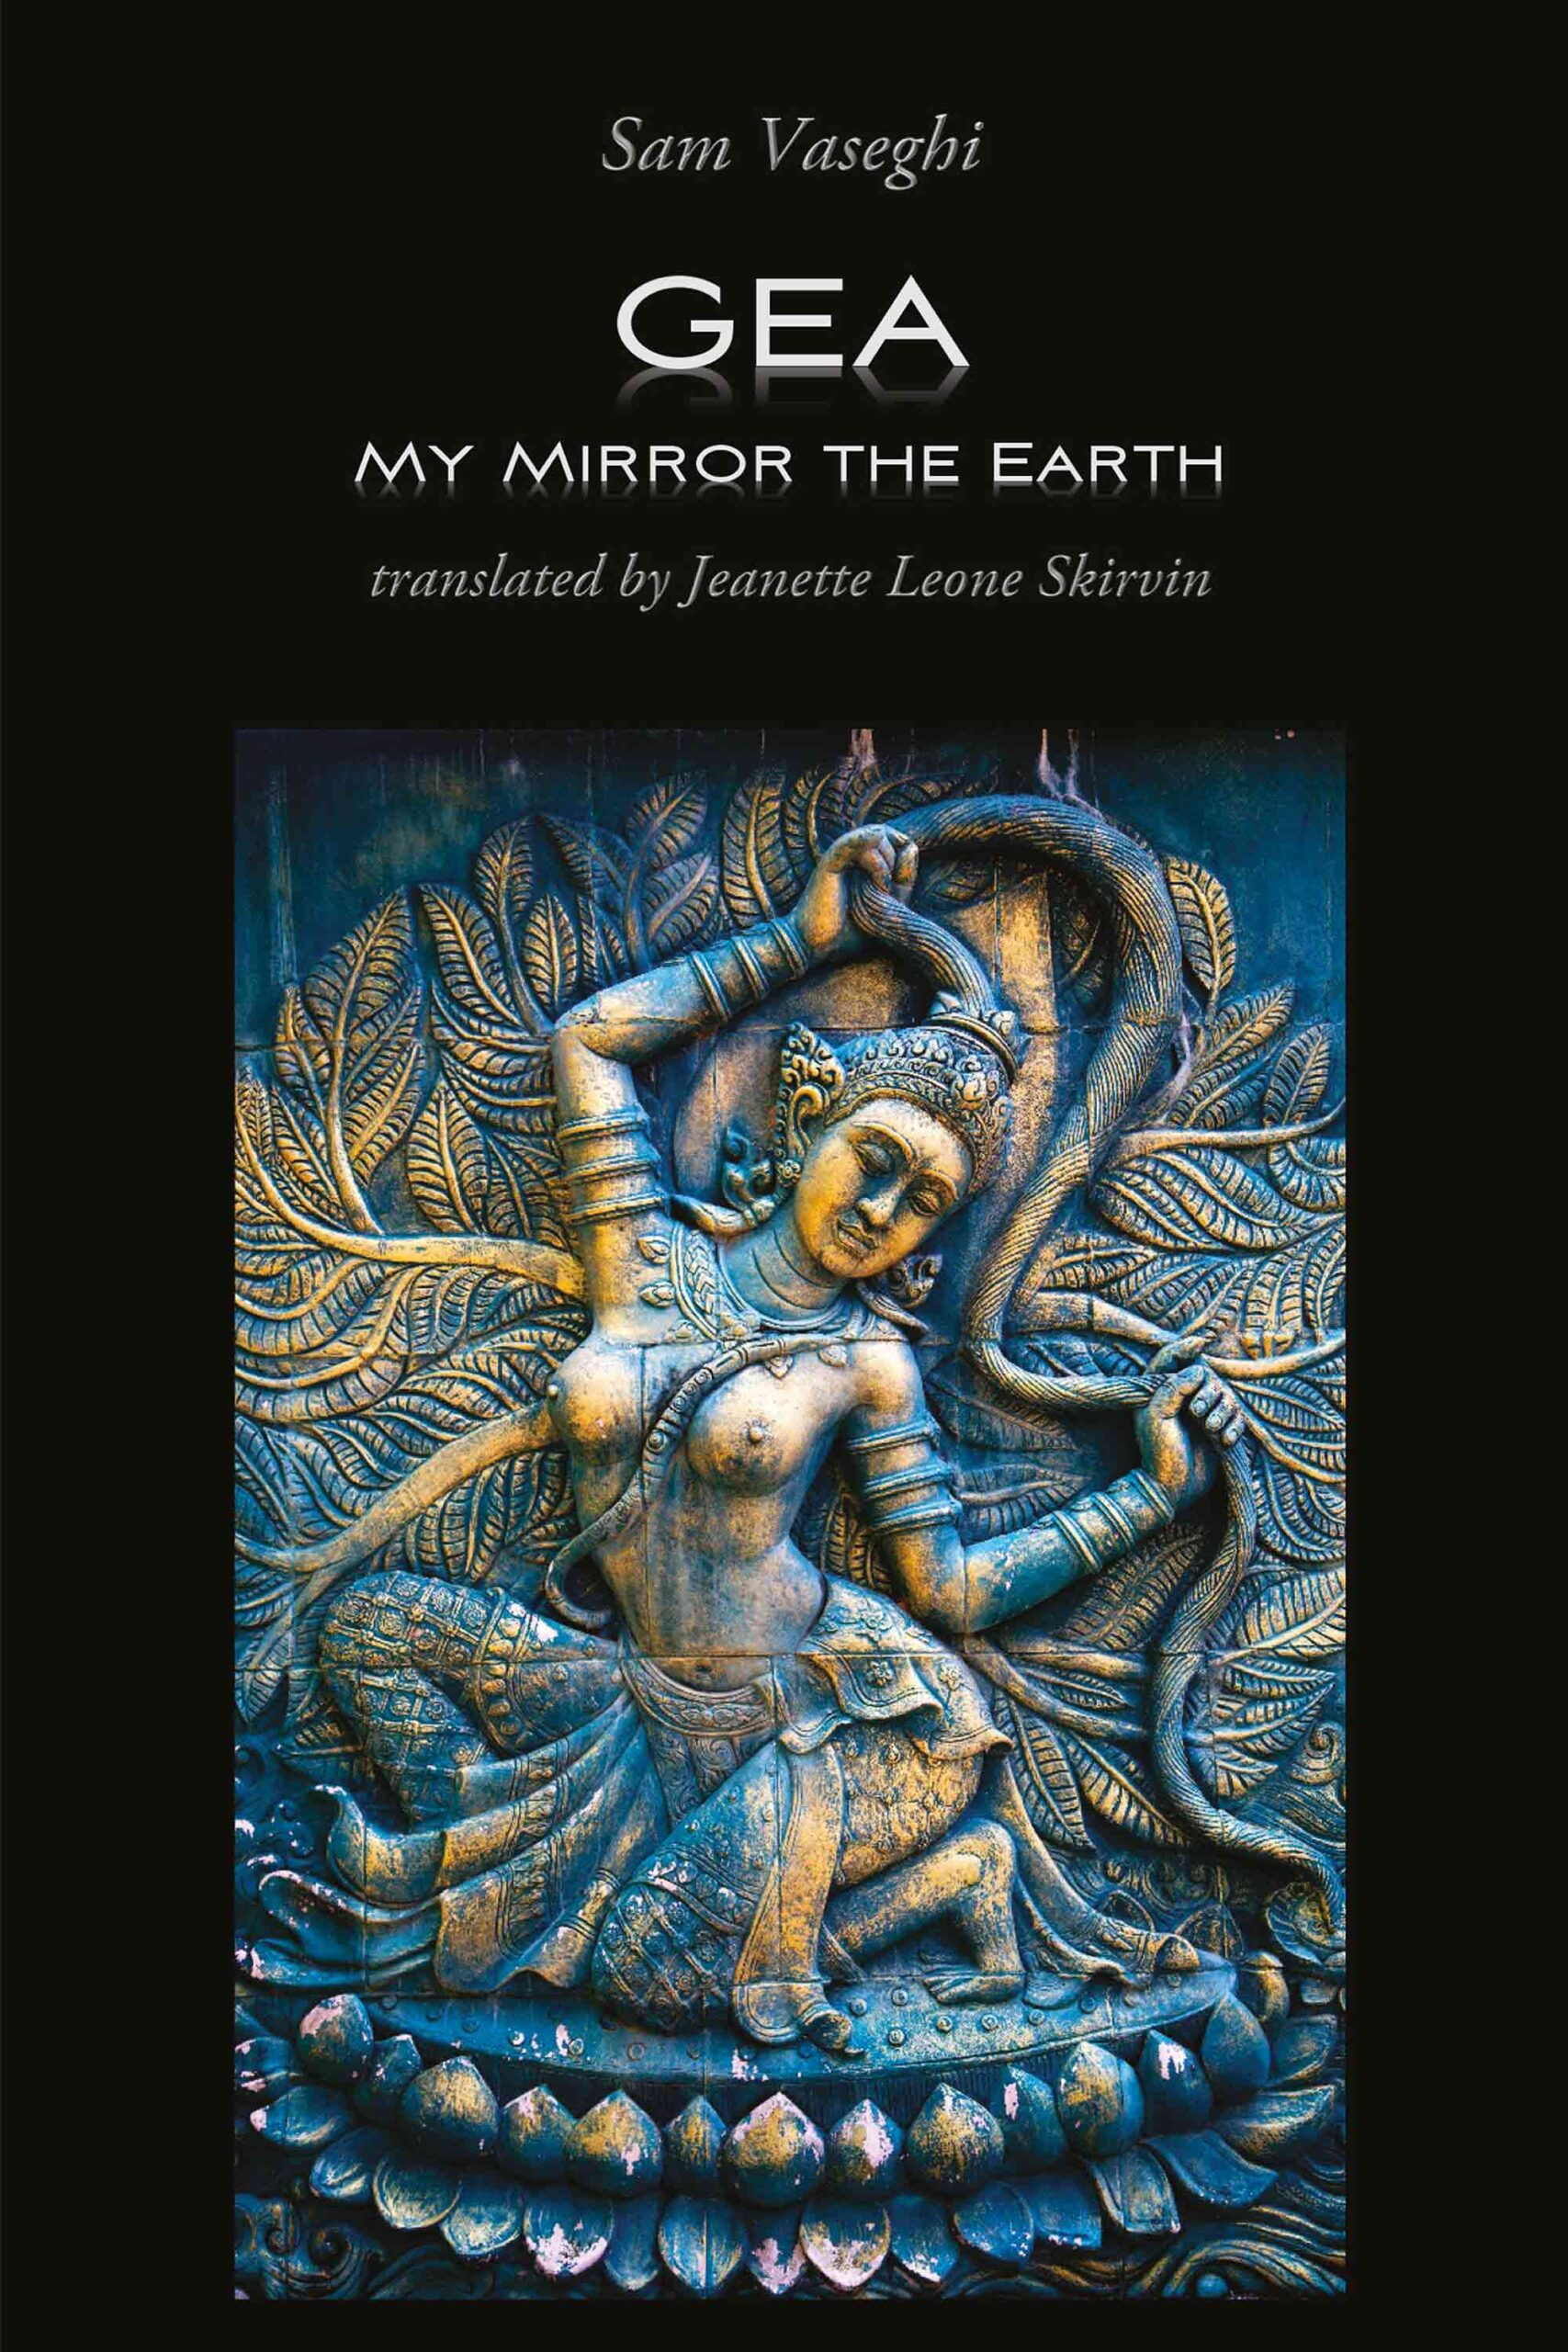 GEA – My Mirror the Earth